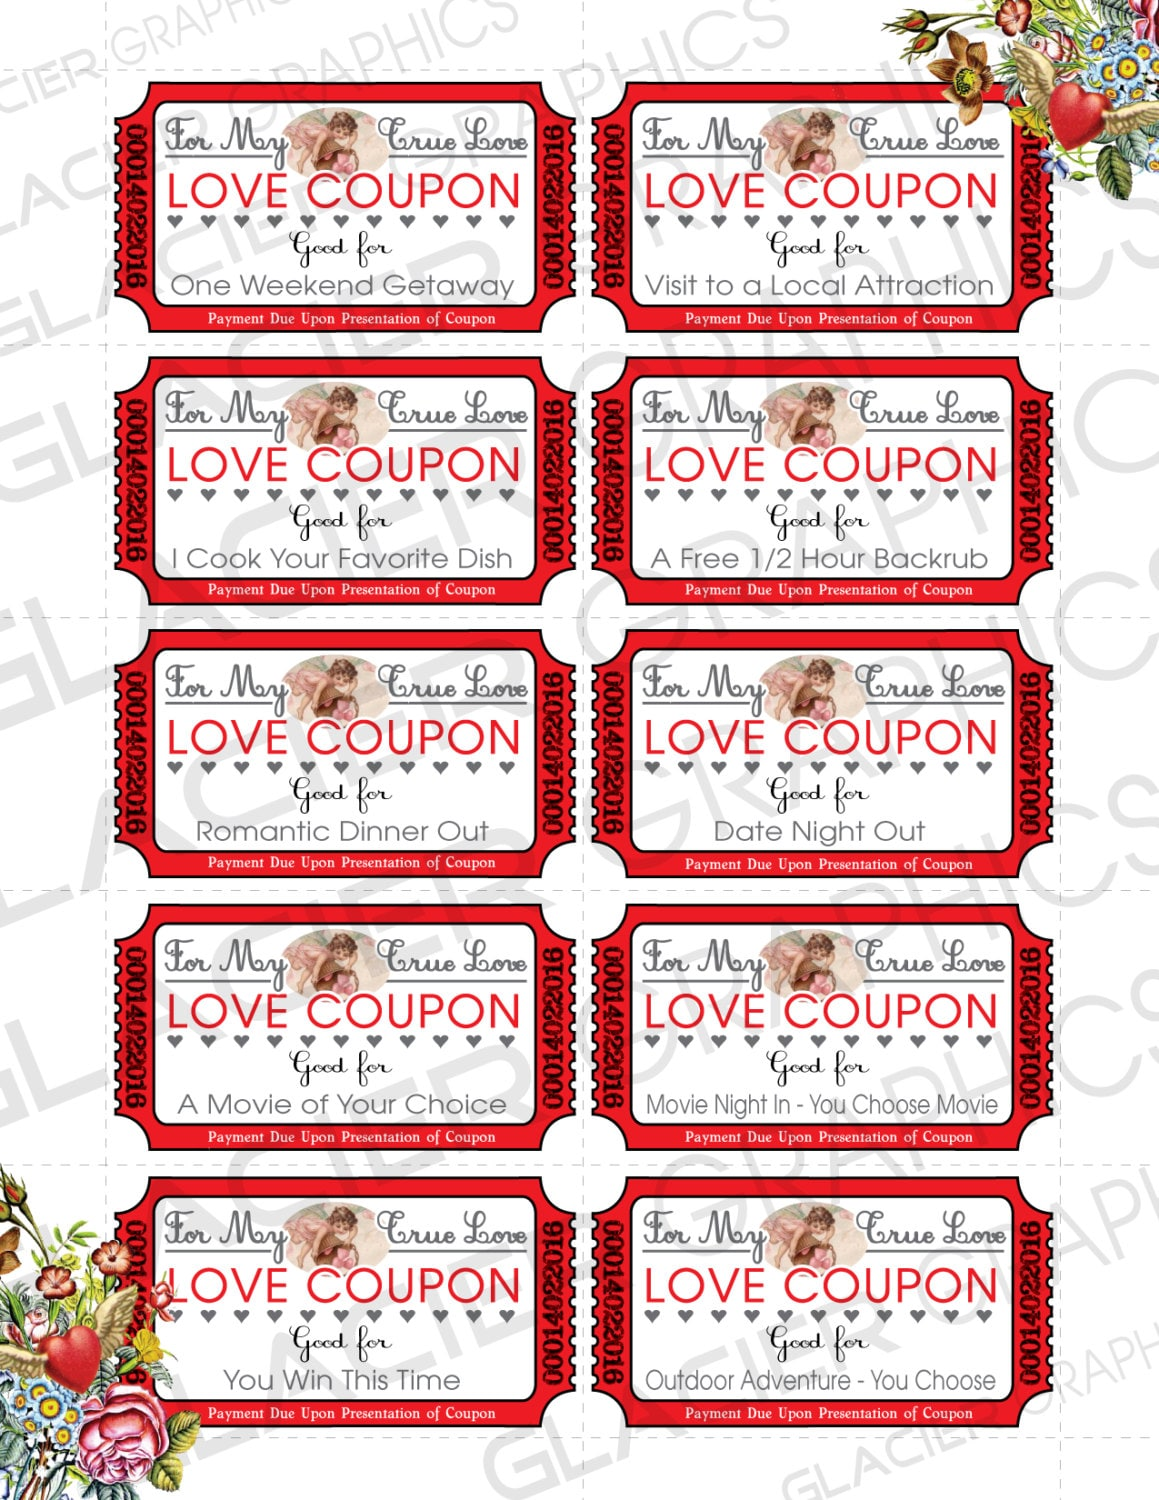 Love coupons promo code